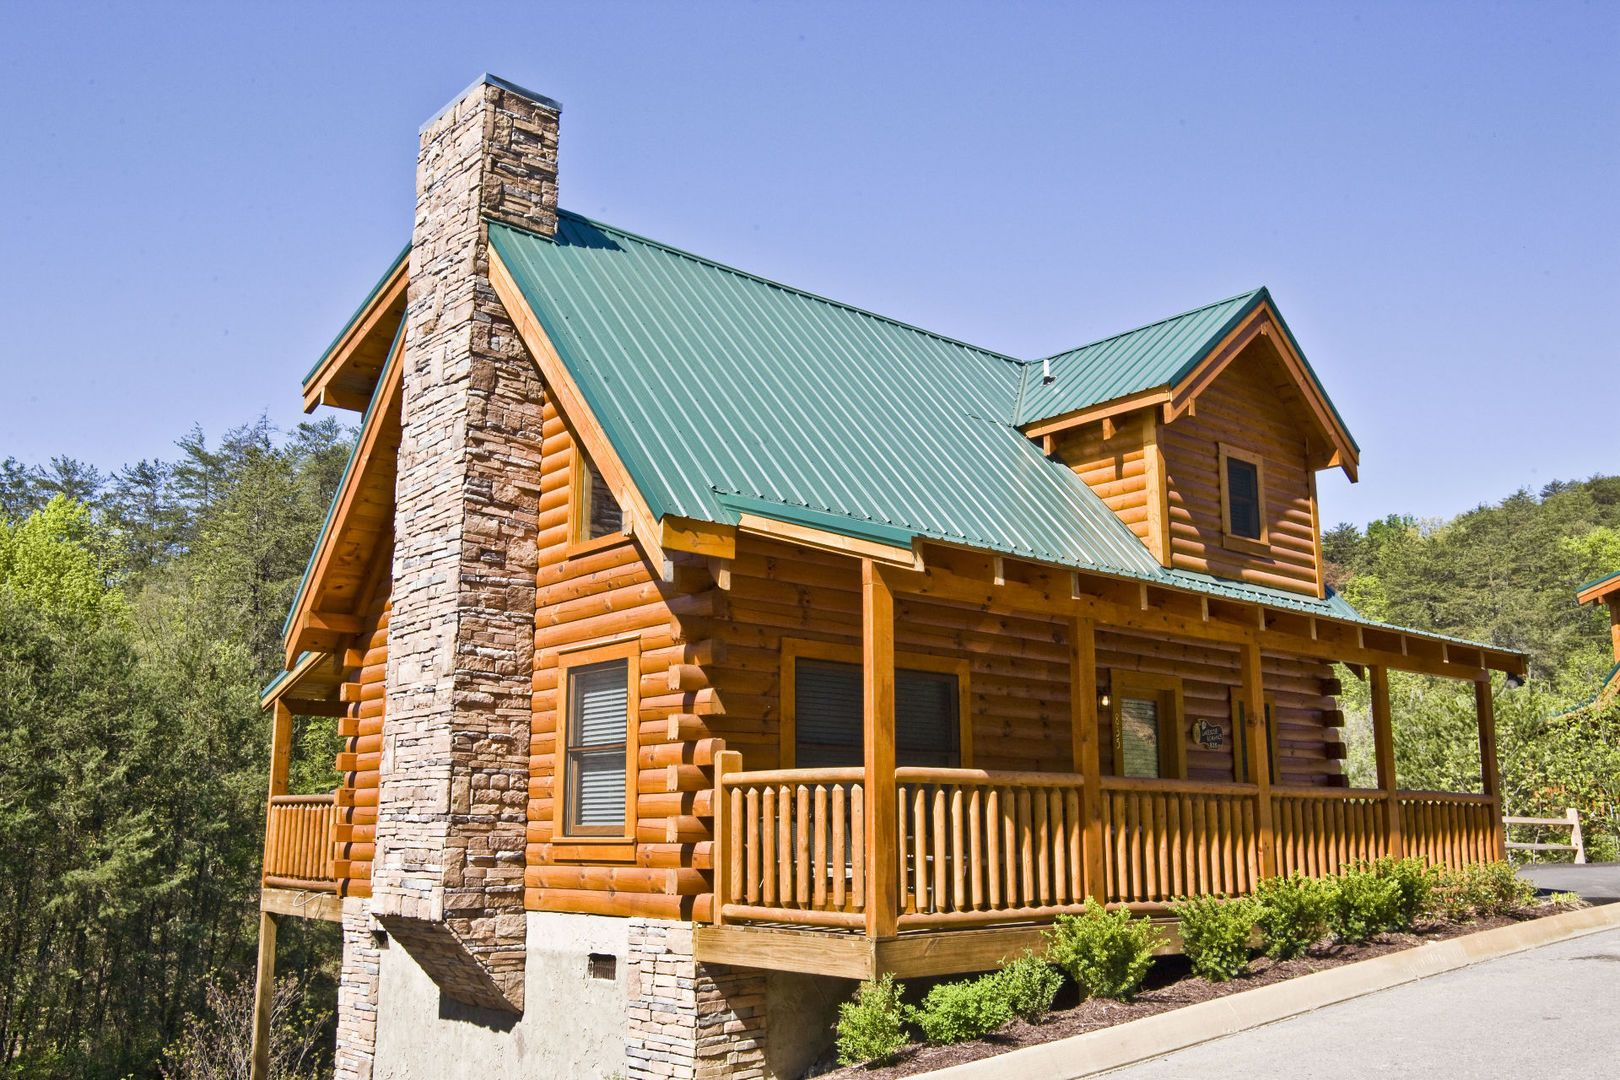 4 Of Our Best 1 Bedroom Cabins In Pigeon Forge Tn For A Romantic Getaway Pigeon Forge Cabins Cabin Resort Cabins